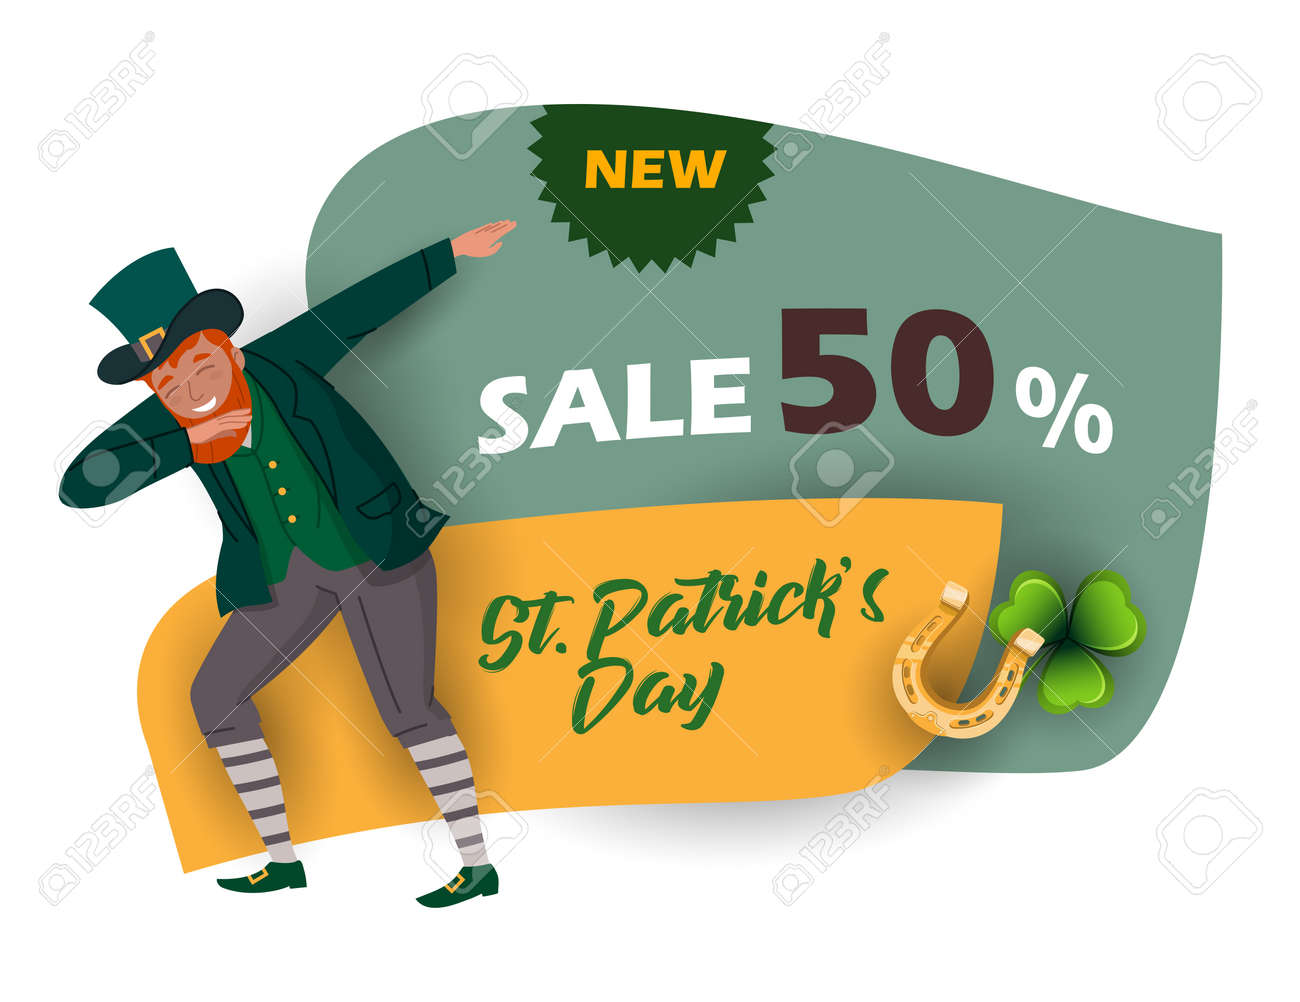 St. Patrick's Day discount and sale sticker with Irish fantastic character Leprechaun. Special offer banner Vector design - 164771742